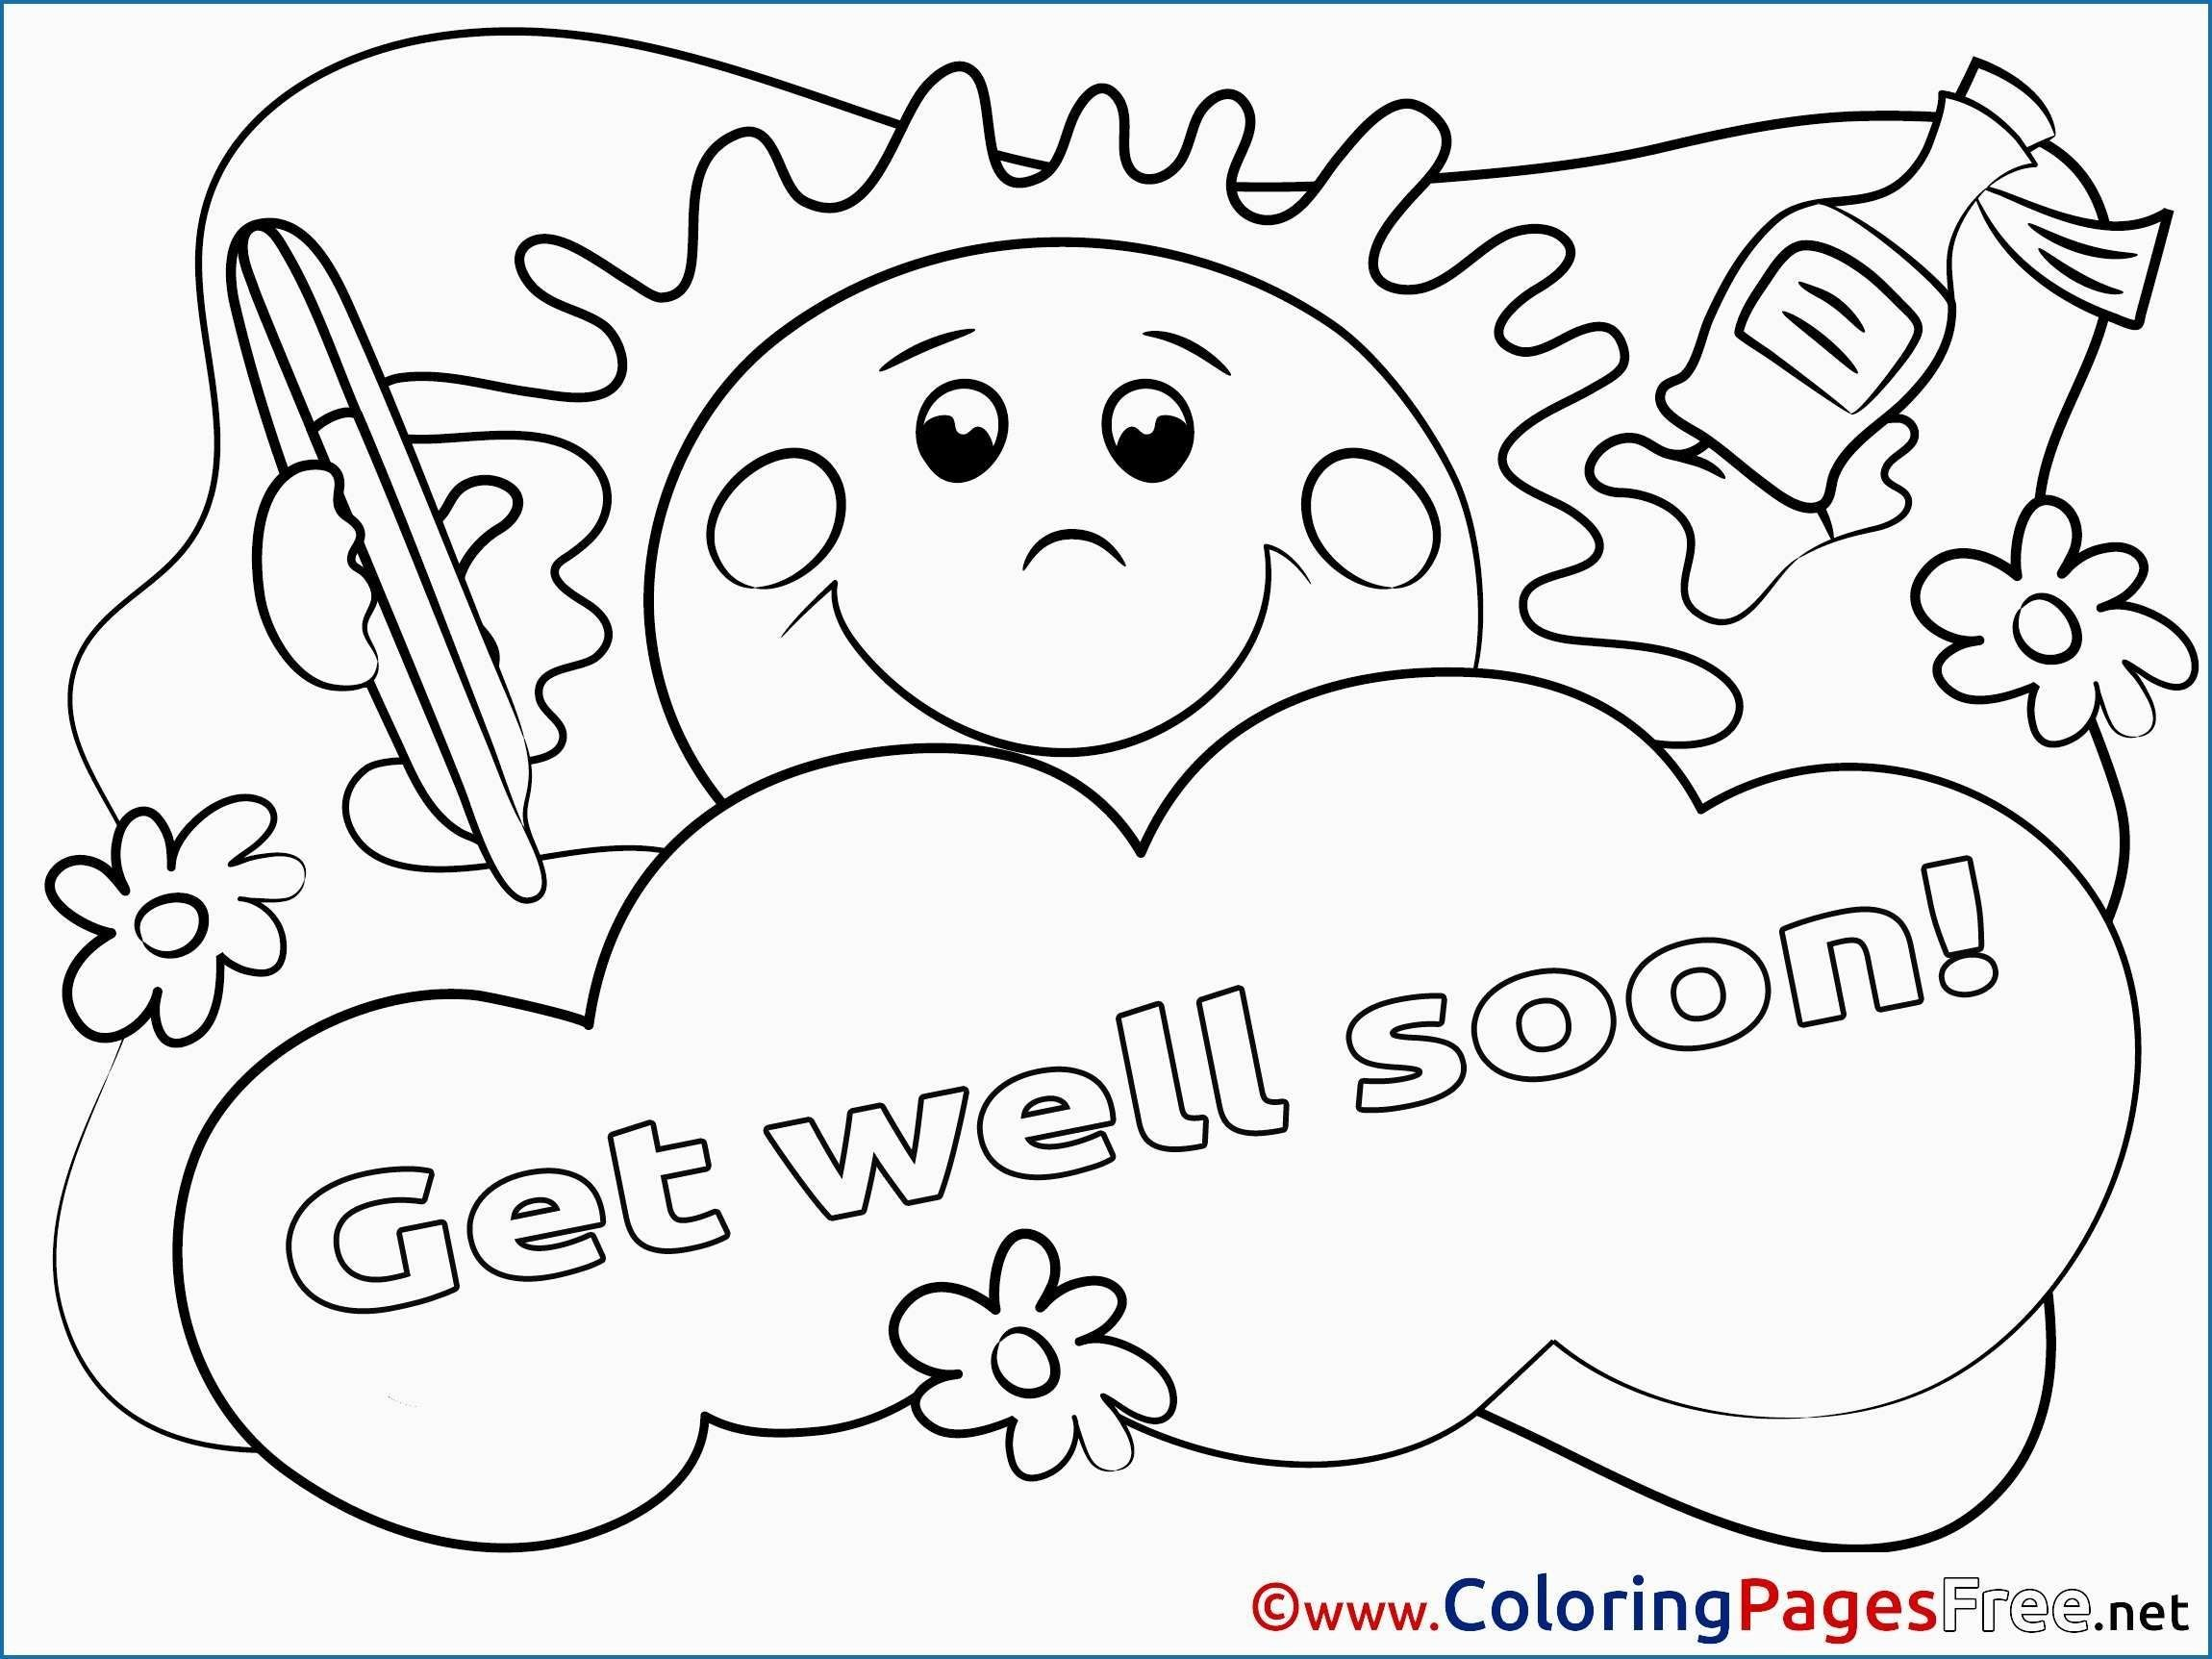 Get Well Soon Coloring Pages Gallery Get Well Cards Get Well Soon Coloring Pages Cute